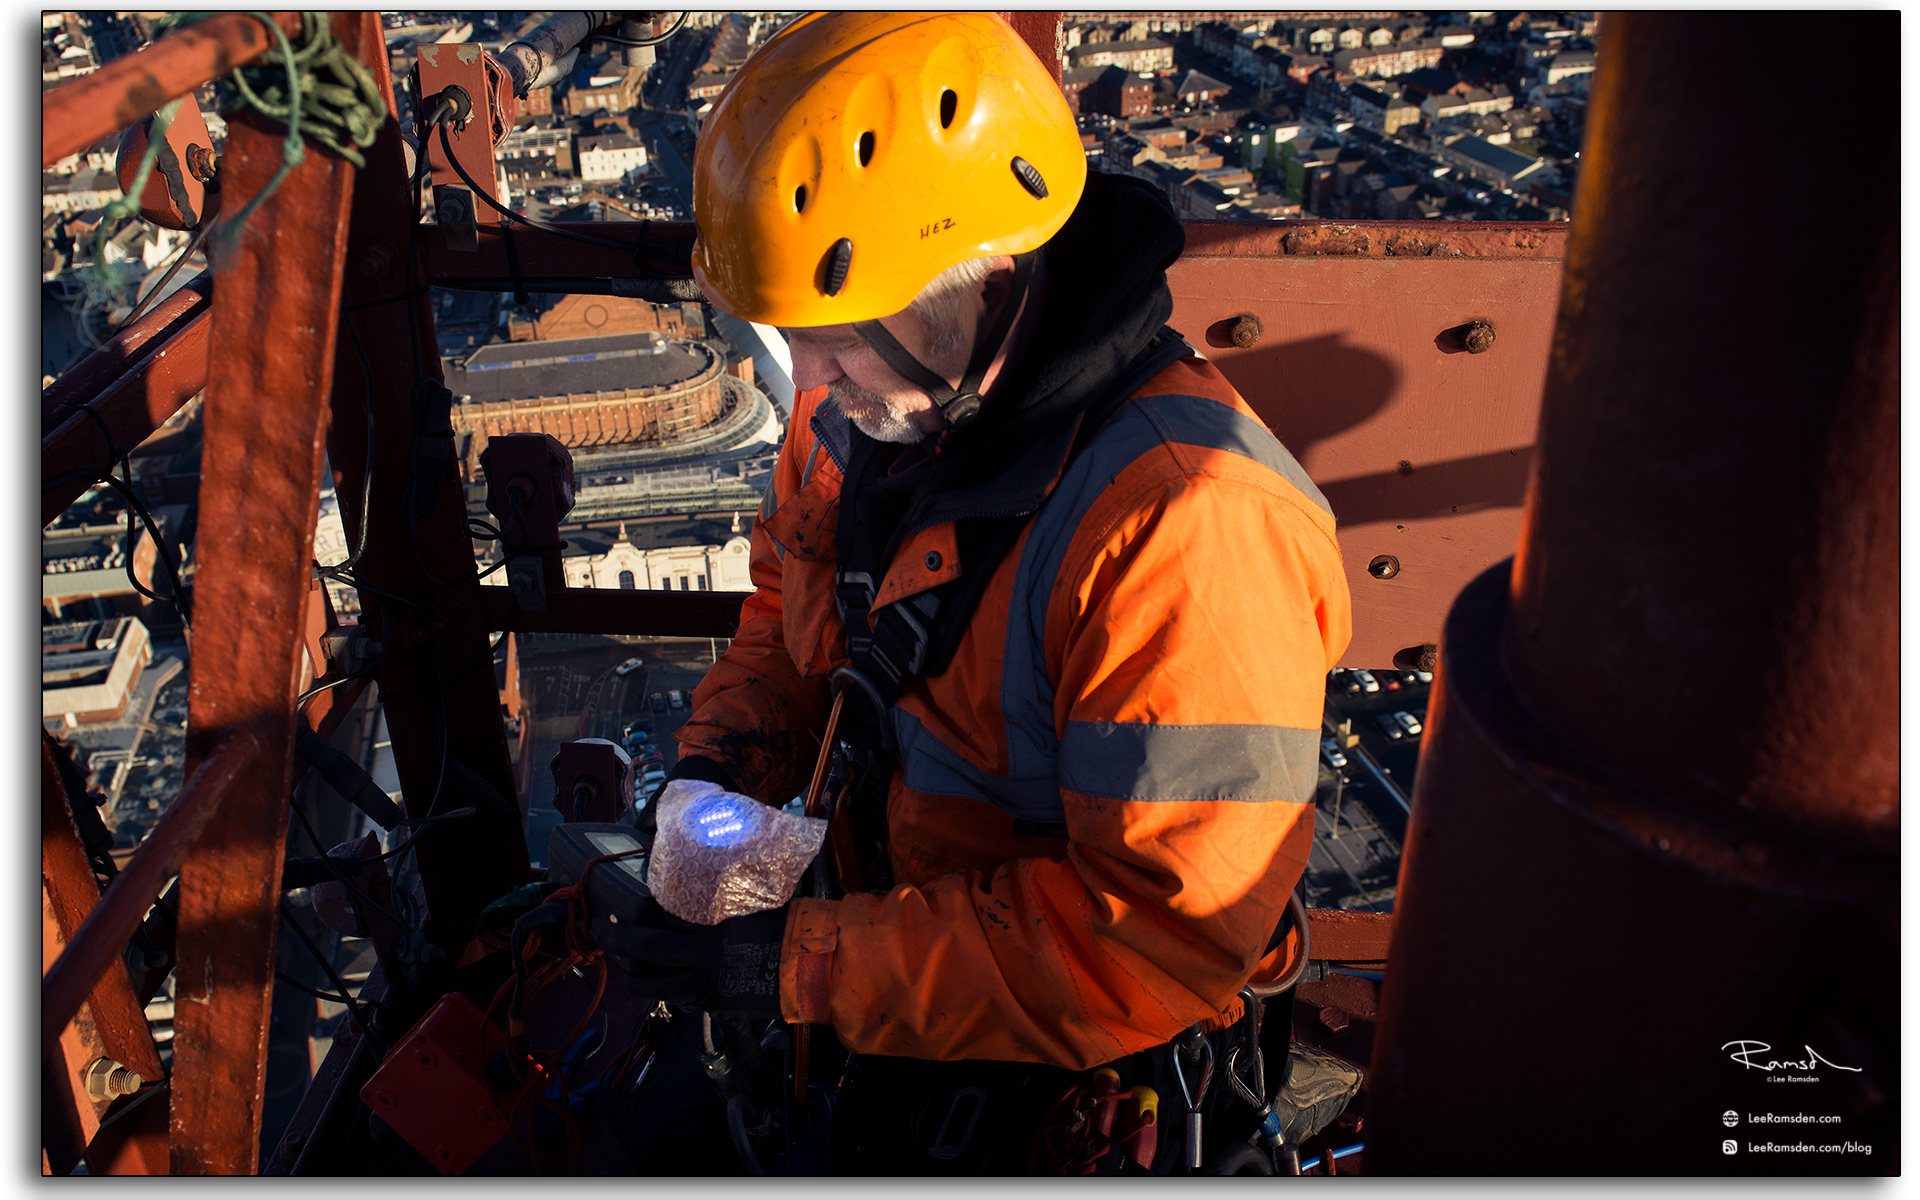 07 Wesley Berry Wez top of Blackpool Tower changing the light bulbs IRATA rope access photography by Lee Ramsden